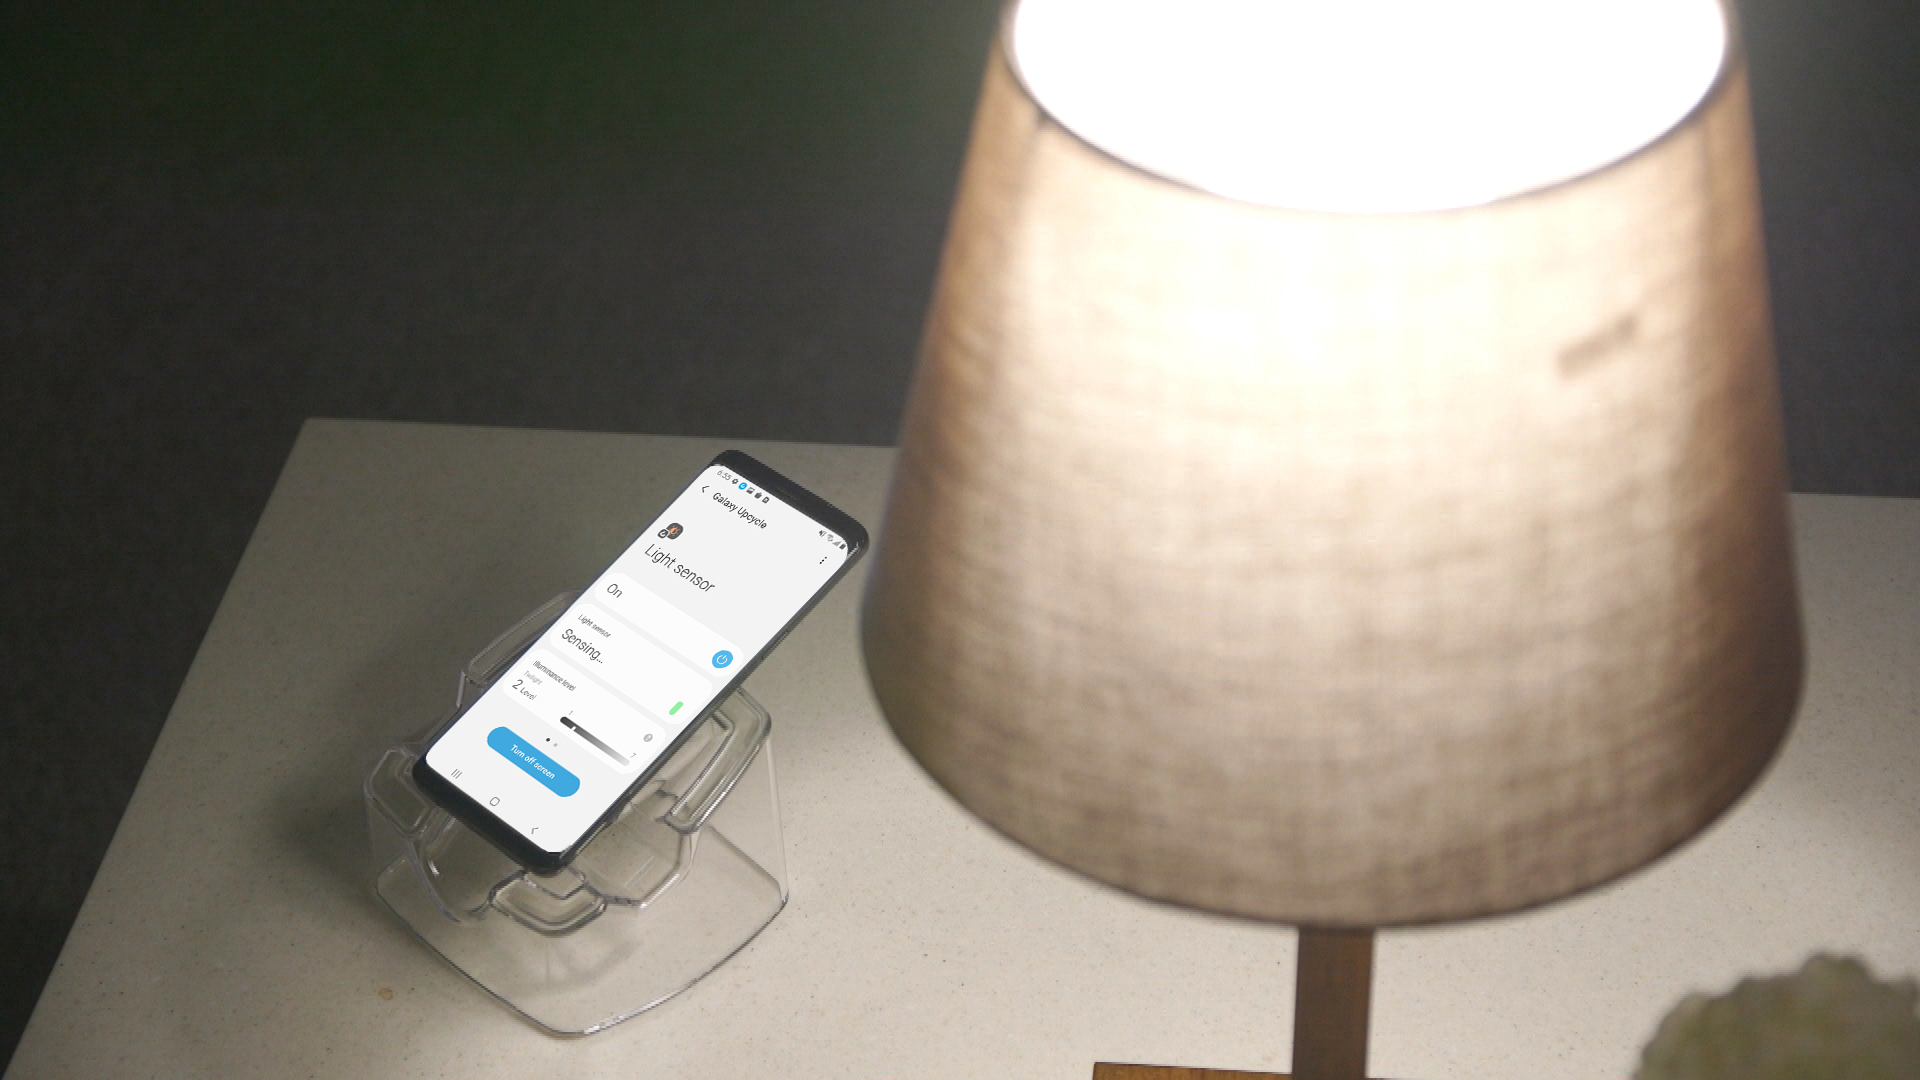 Samsung Electronics expands its Galaxy Upcycling Program to enable consumers to repurpose Galaxy smartphones into Smart Home Devices